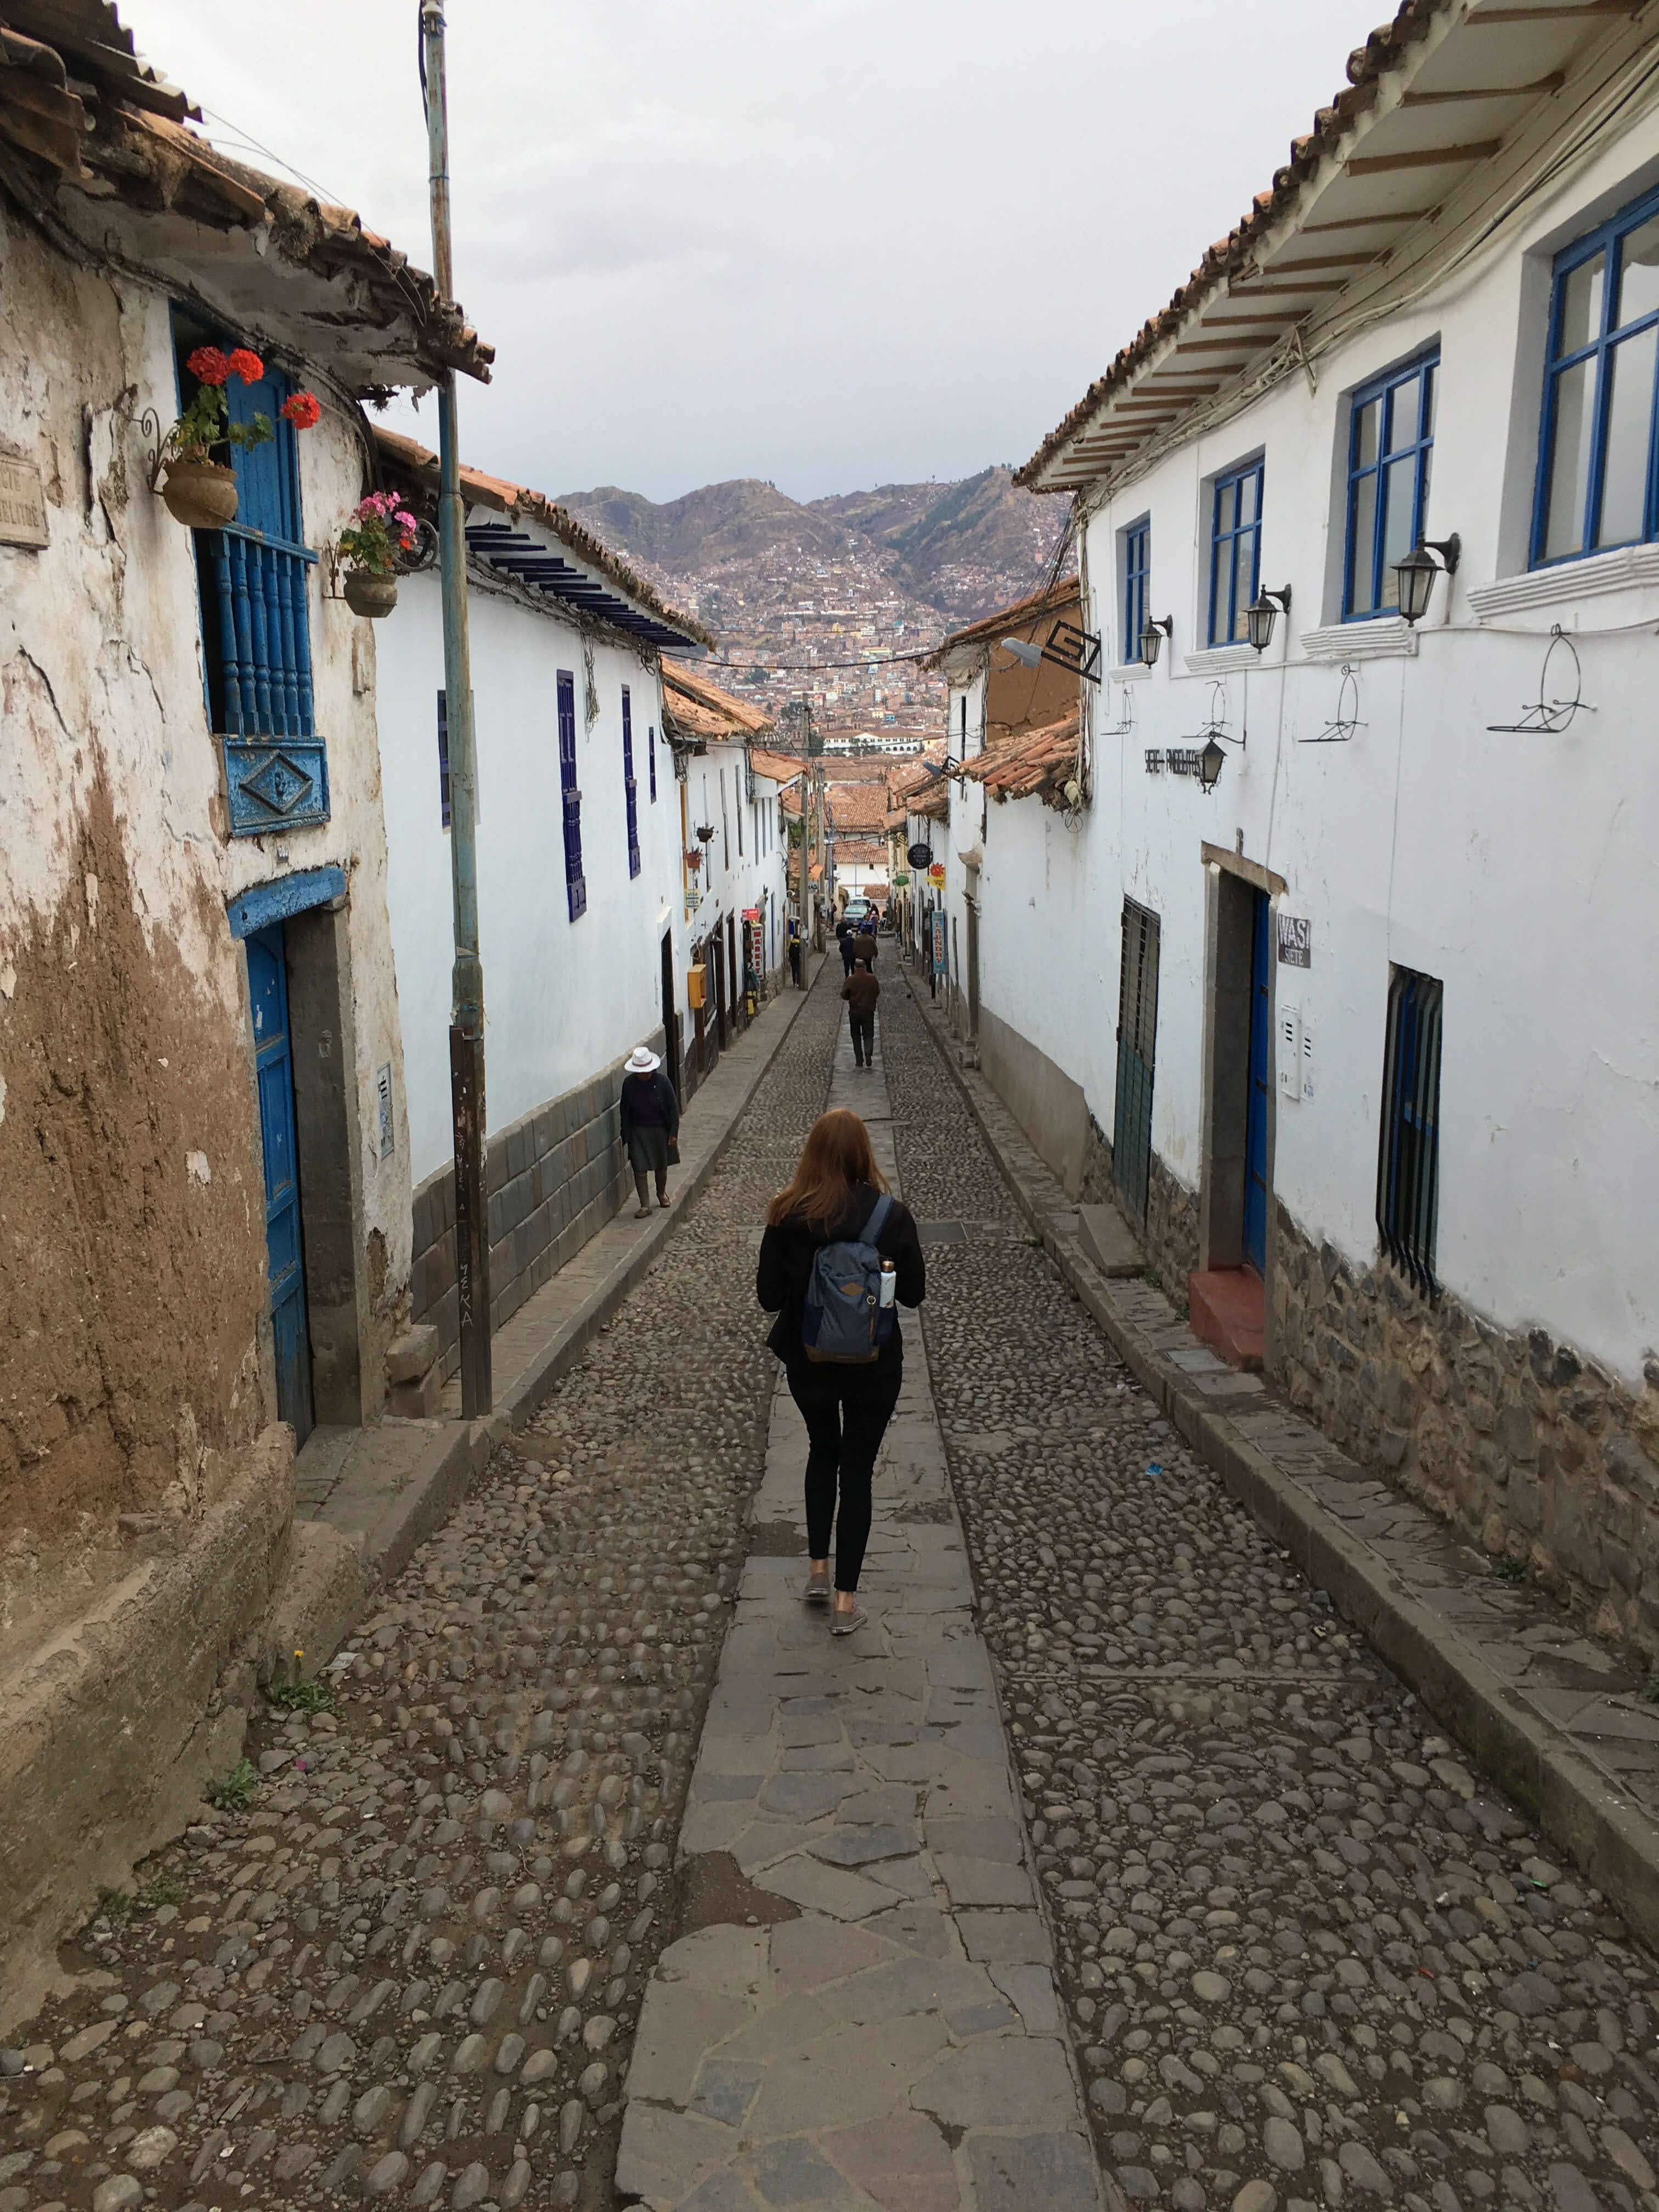 Spending Diary: 6 days in Cuzco and the Sacred Valley